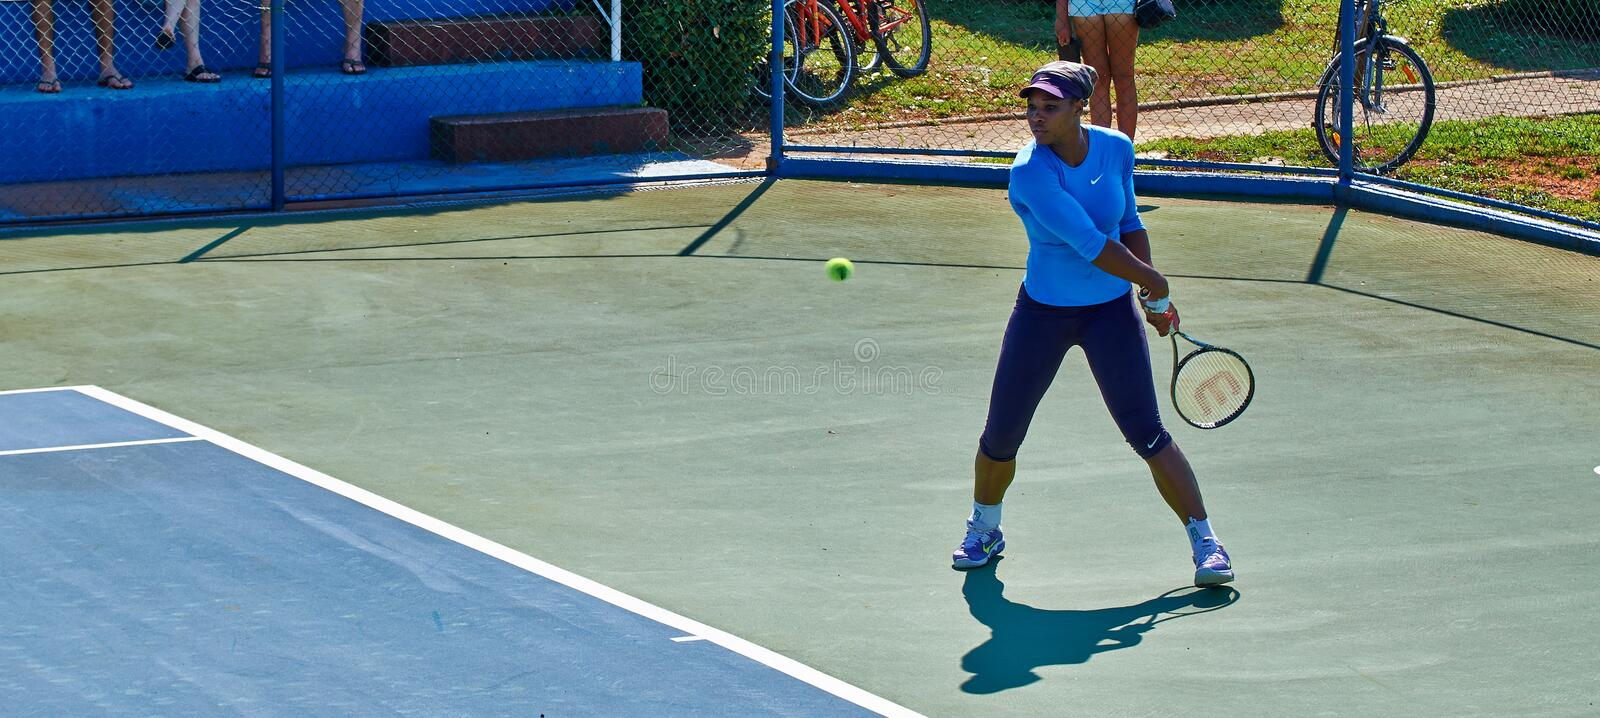 Serena Williams In Umag, Kroatien lizenzfreies stockbild